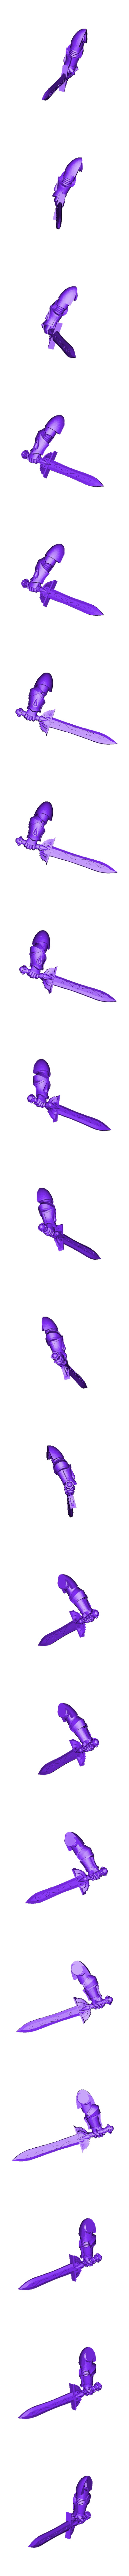 rightsword_3.stl Download STL file Sanguine Angels  Arms and Weapons • 3D printer template, vb2341